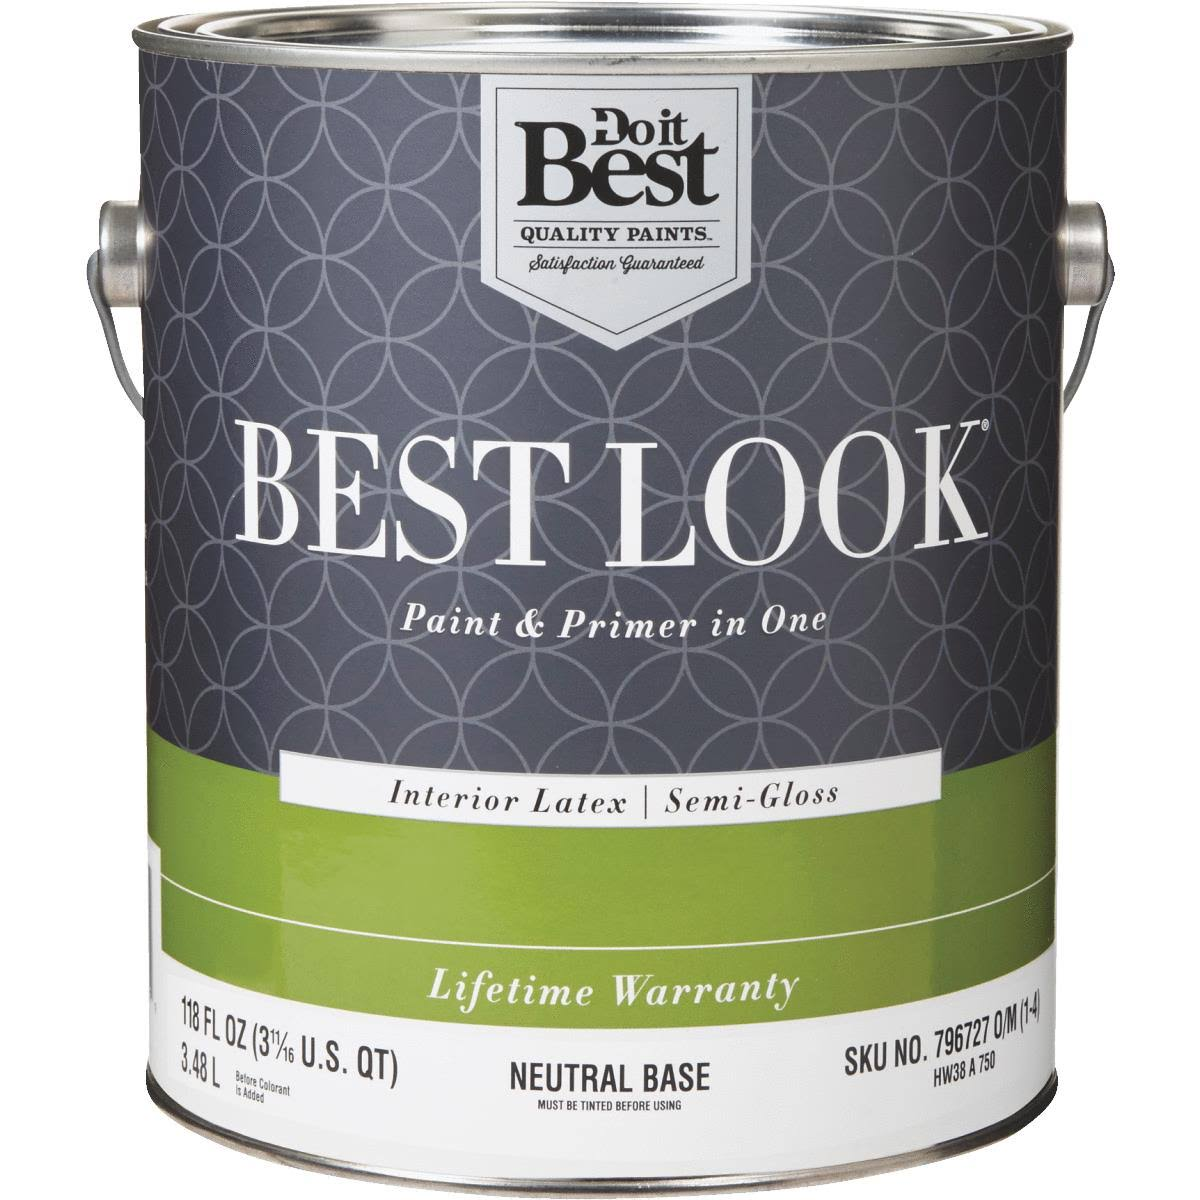 Best Look Latex Paint & Primer in One Semi-Gloss Interior Wall Paint